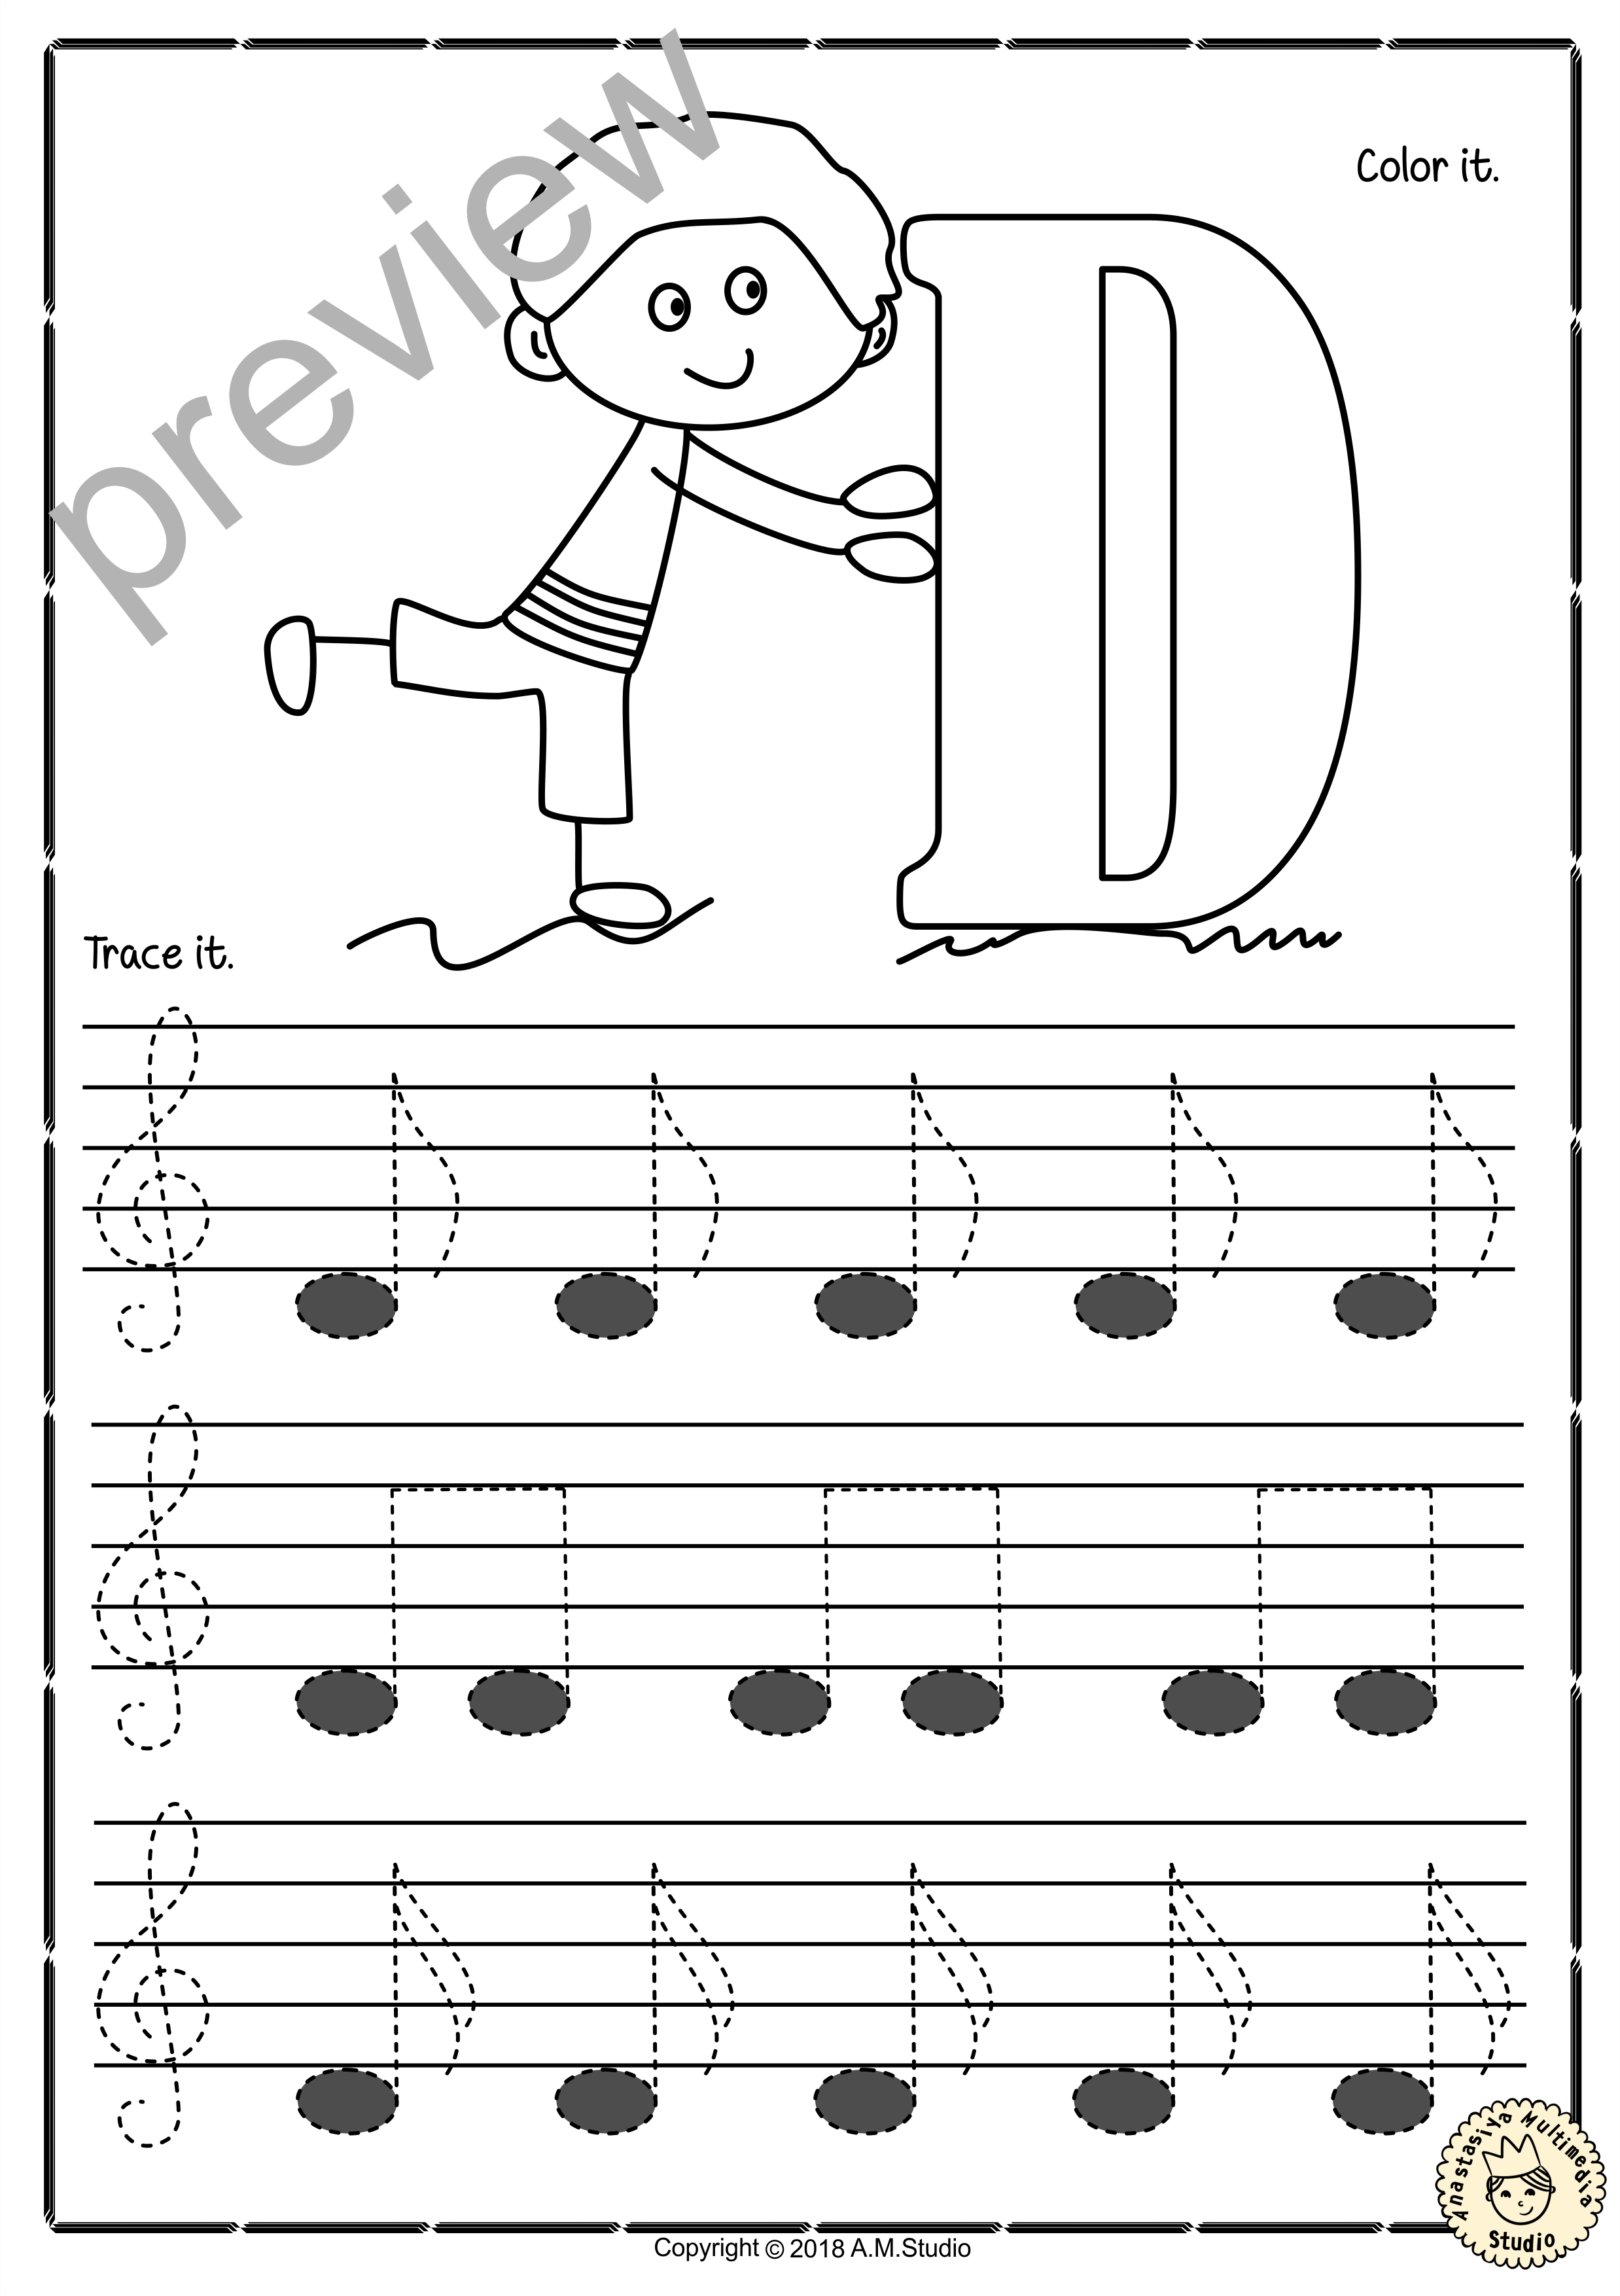 Tracing Music Notes Worksheets For Kids Treble Clef5  Anastasiya For Music Worksheets For Kids